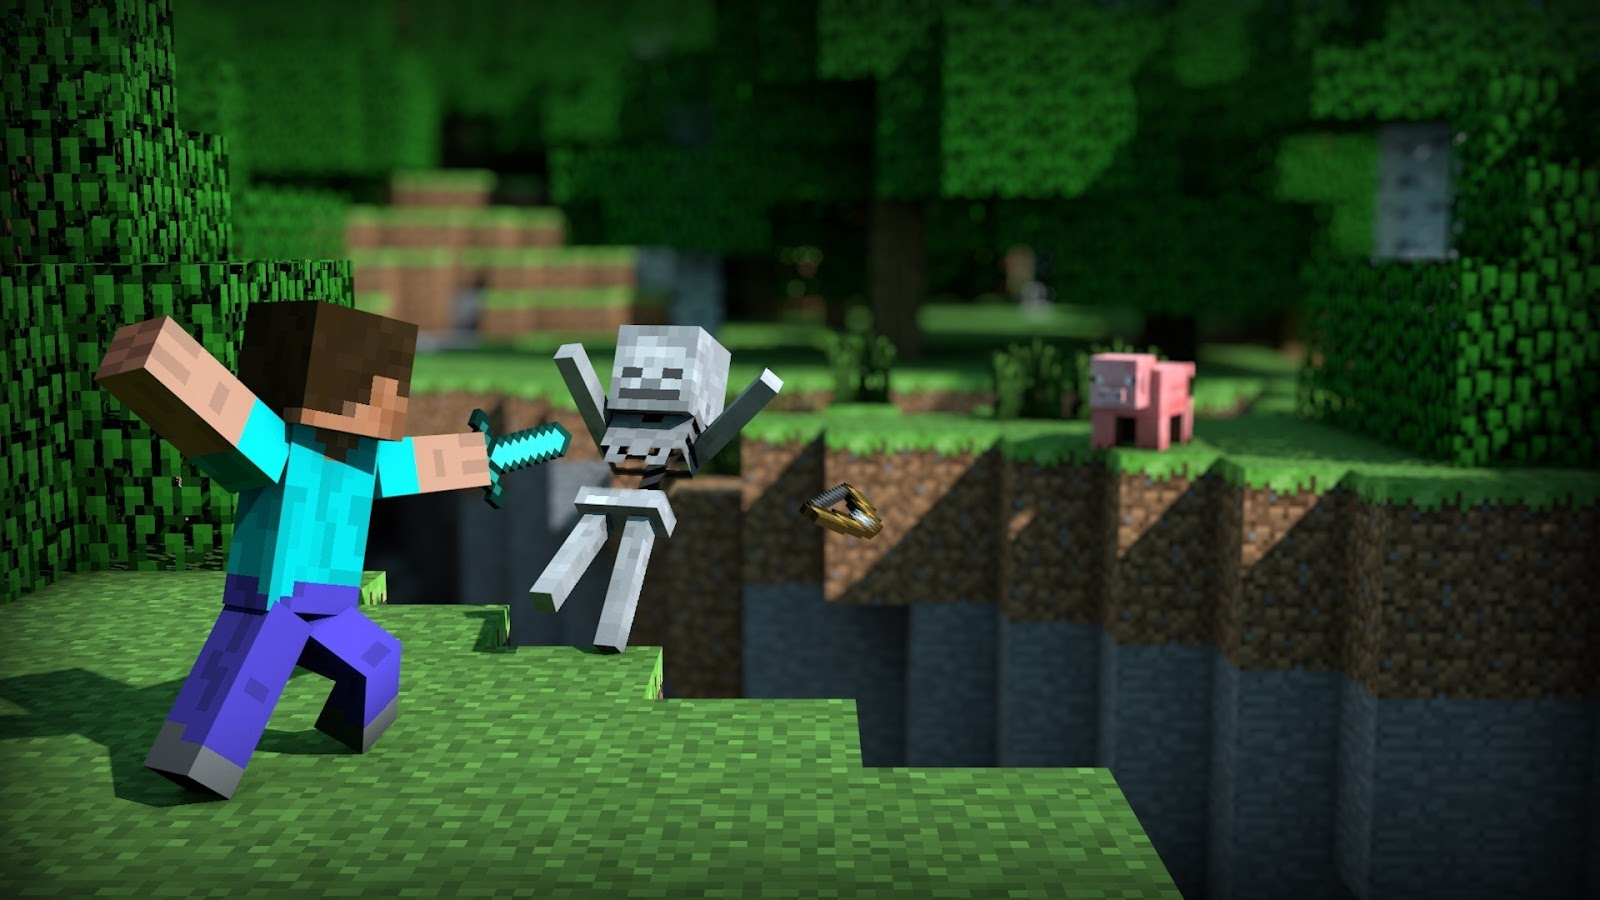 Wallpapers Minecraft Para Android Drivecheapusedmotorhomeinfo - Minecraft spiele android